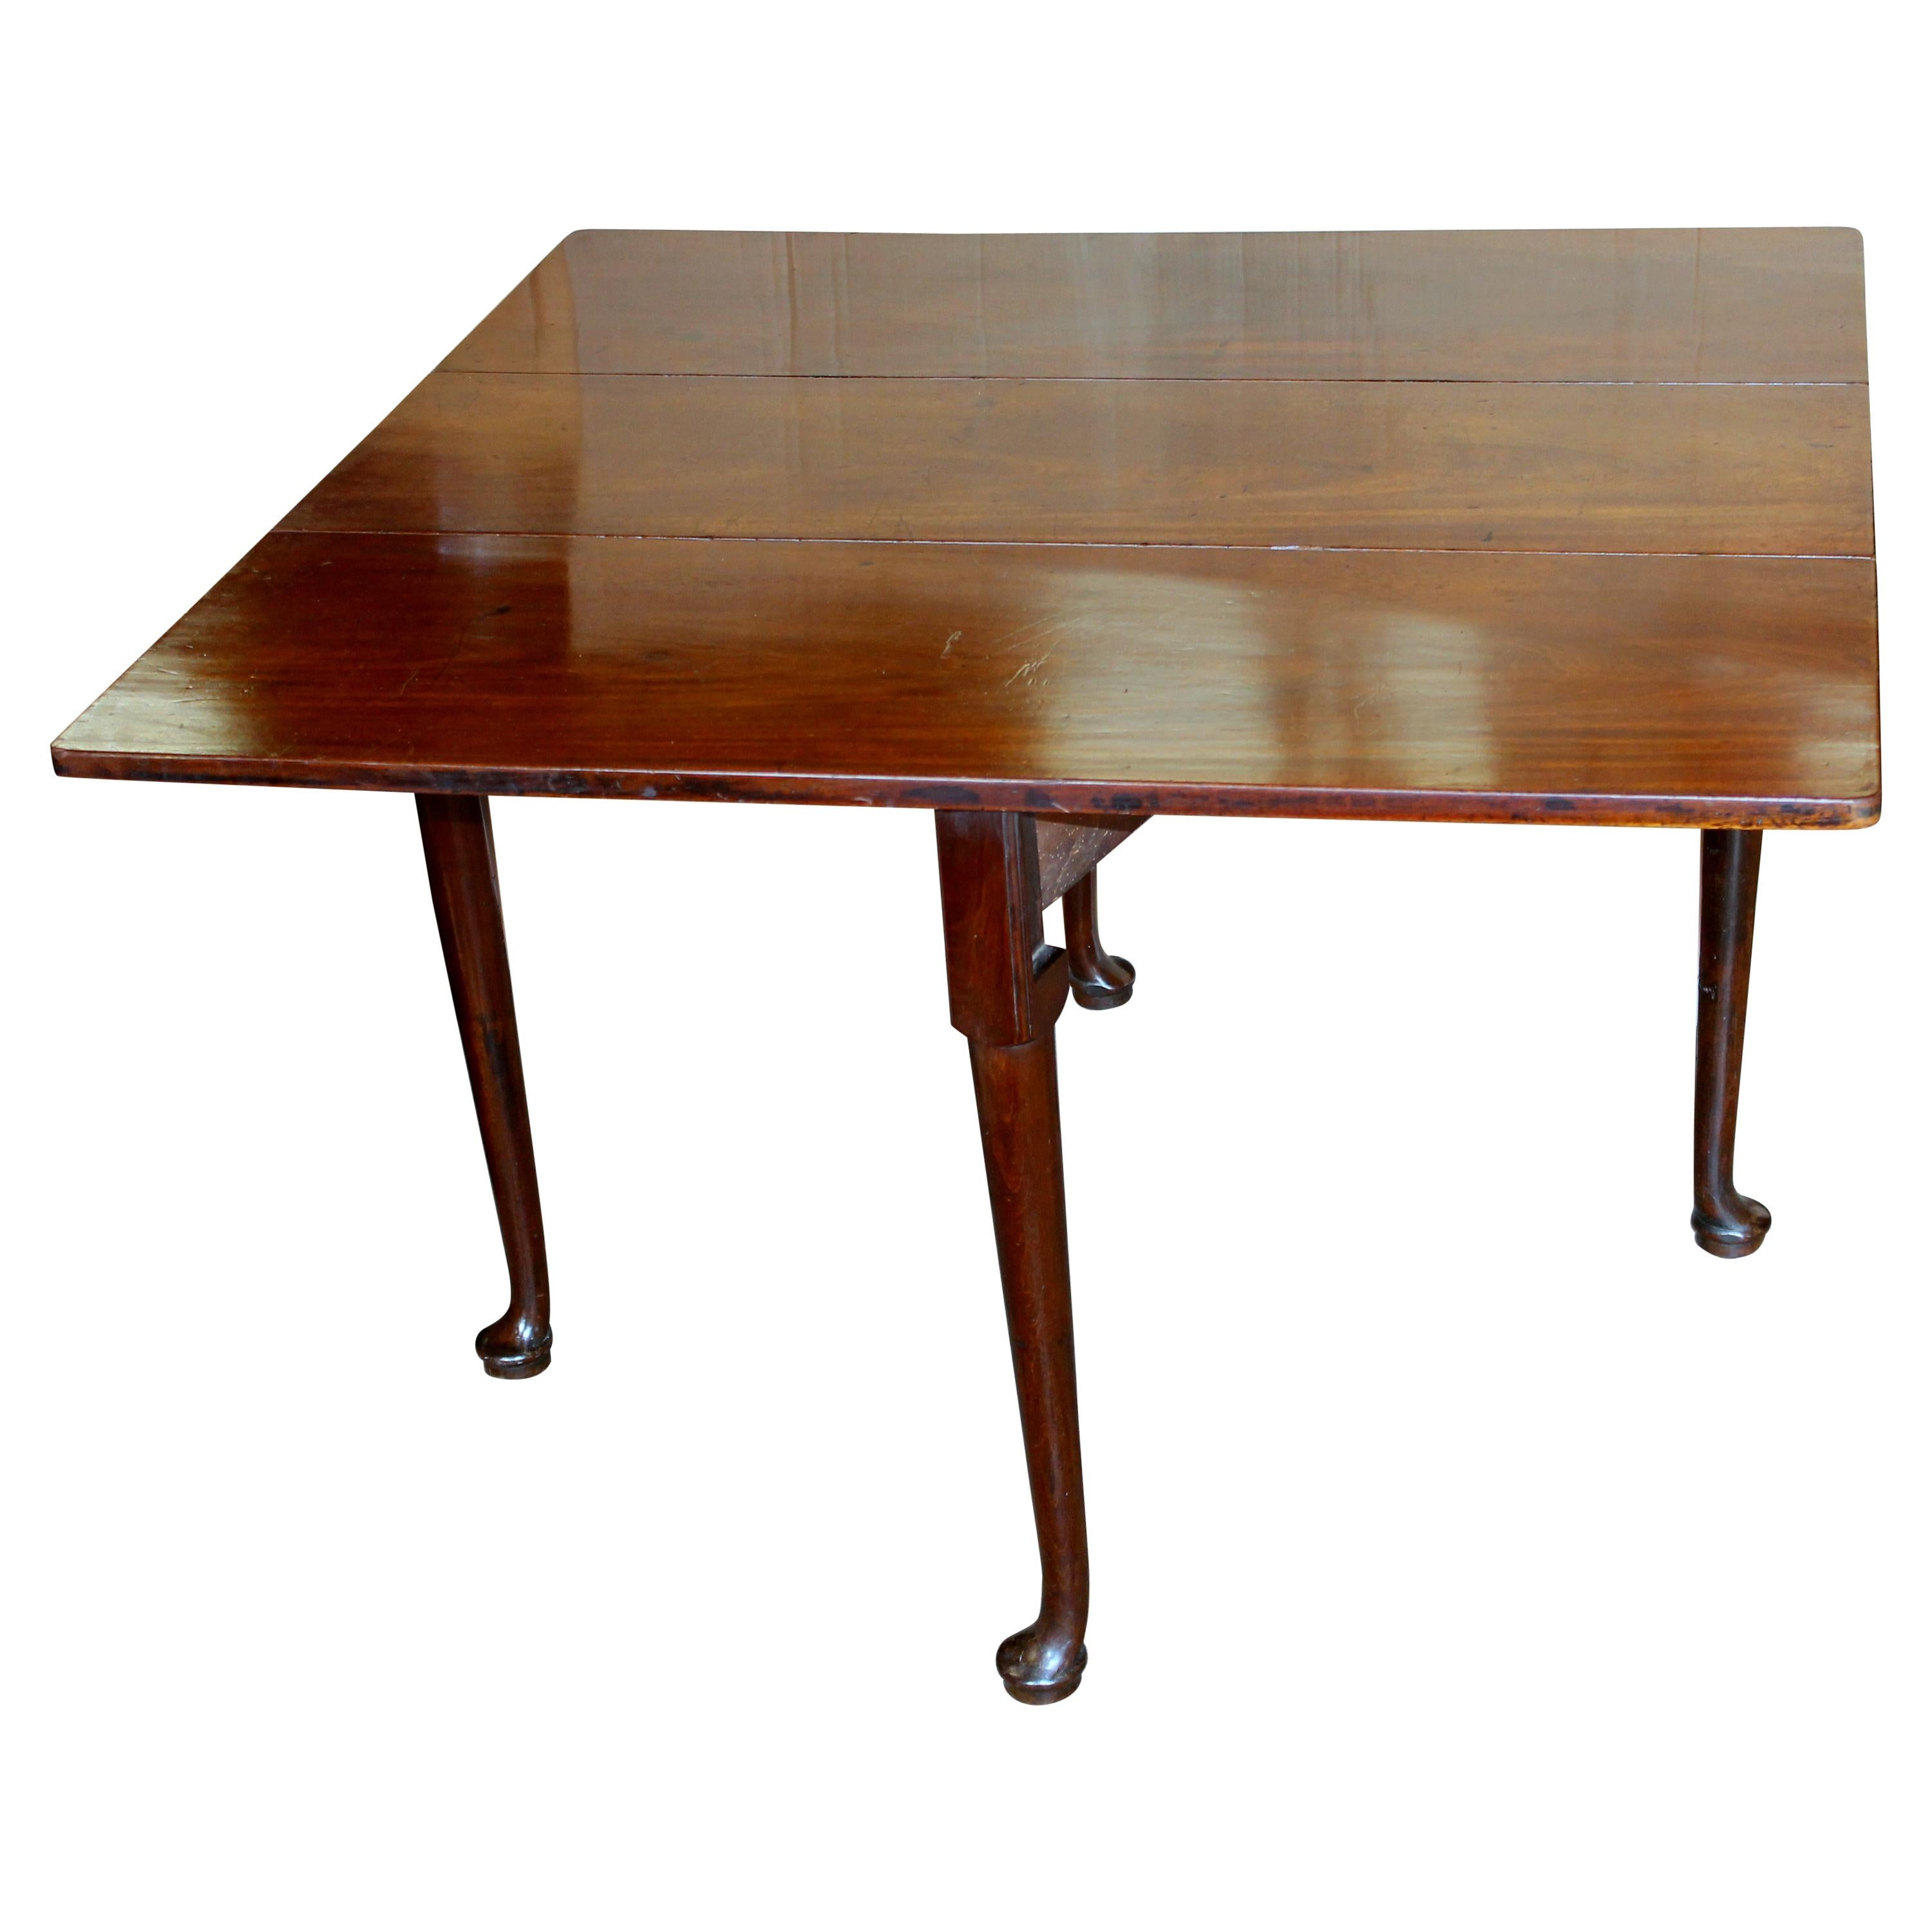 Antique American Federal Period Solid Mahogany Queen Anne Style Drop-Leaf Table